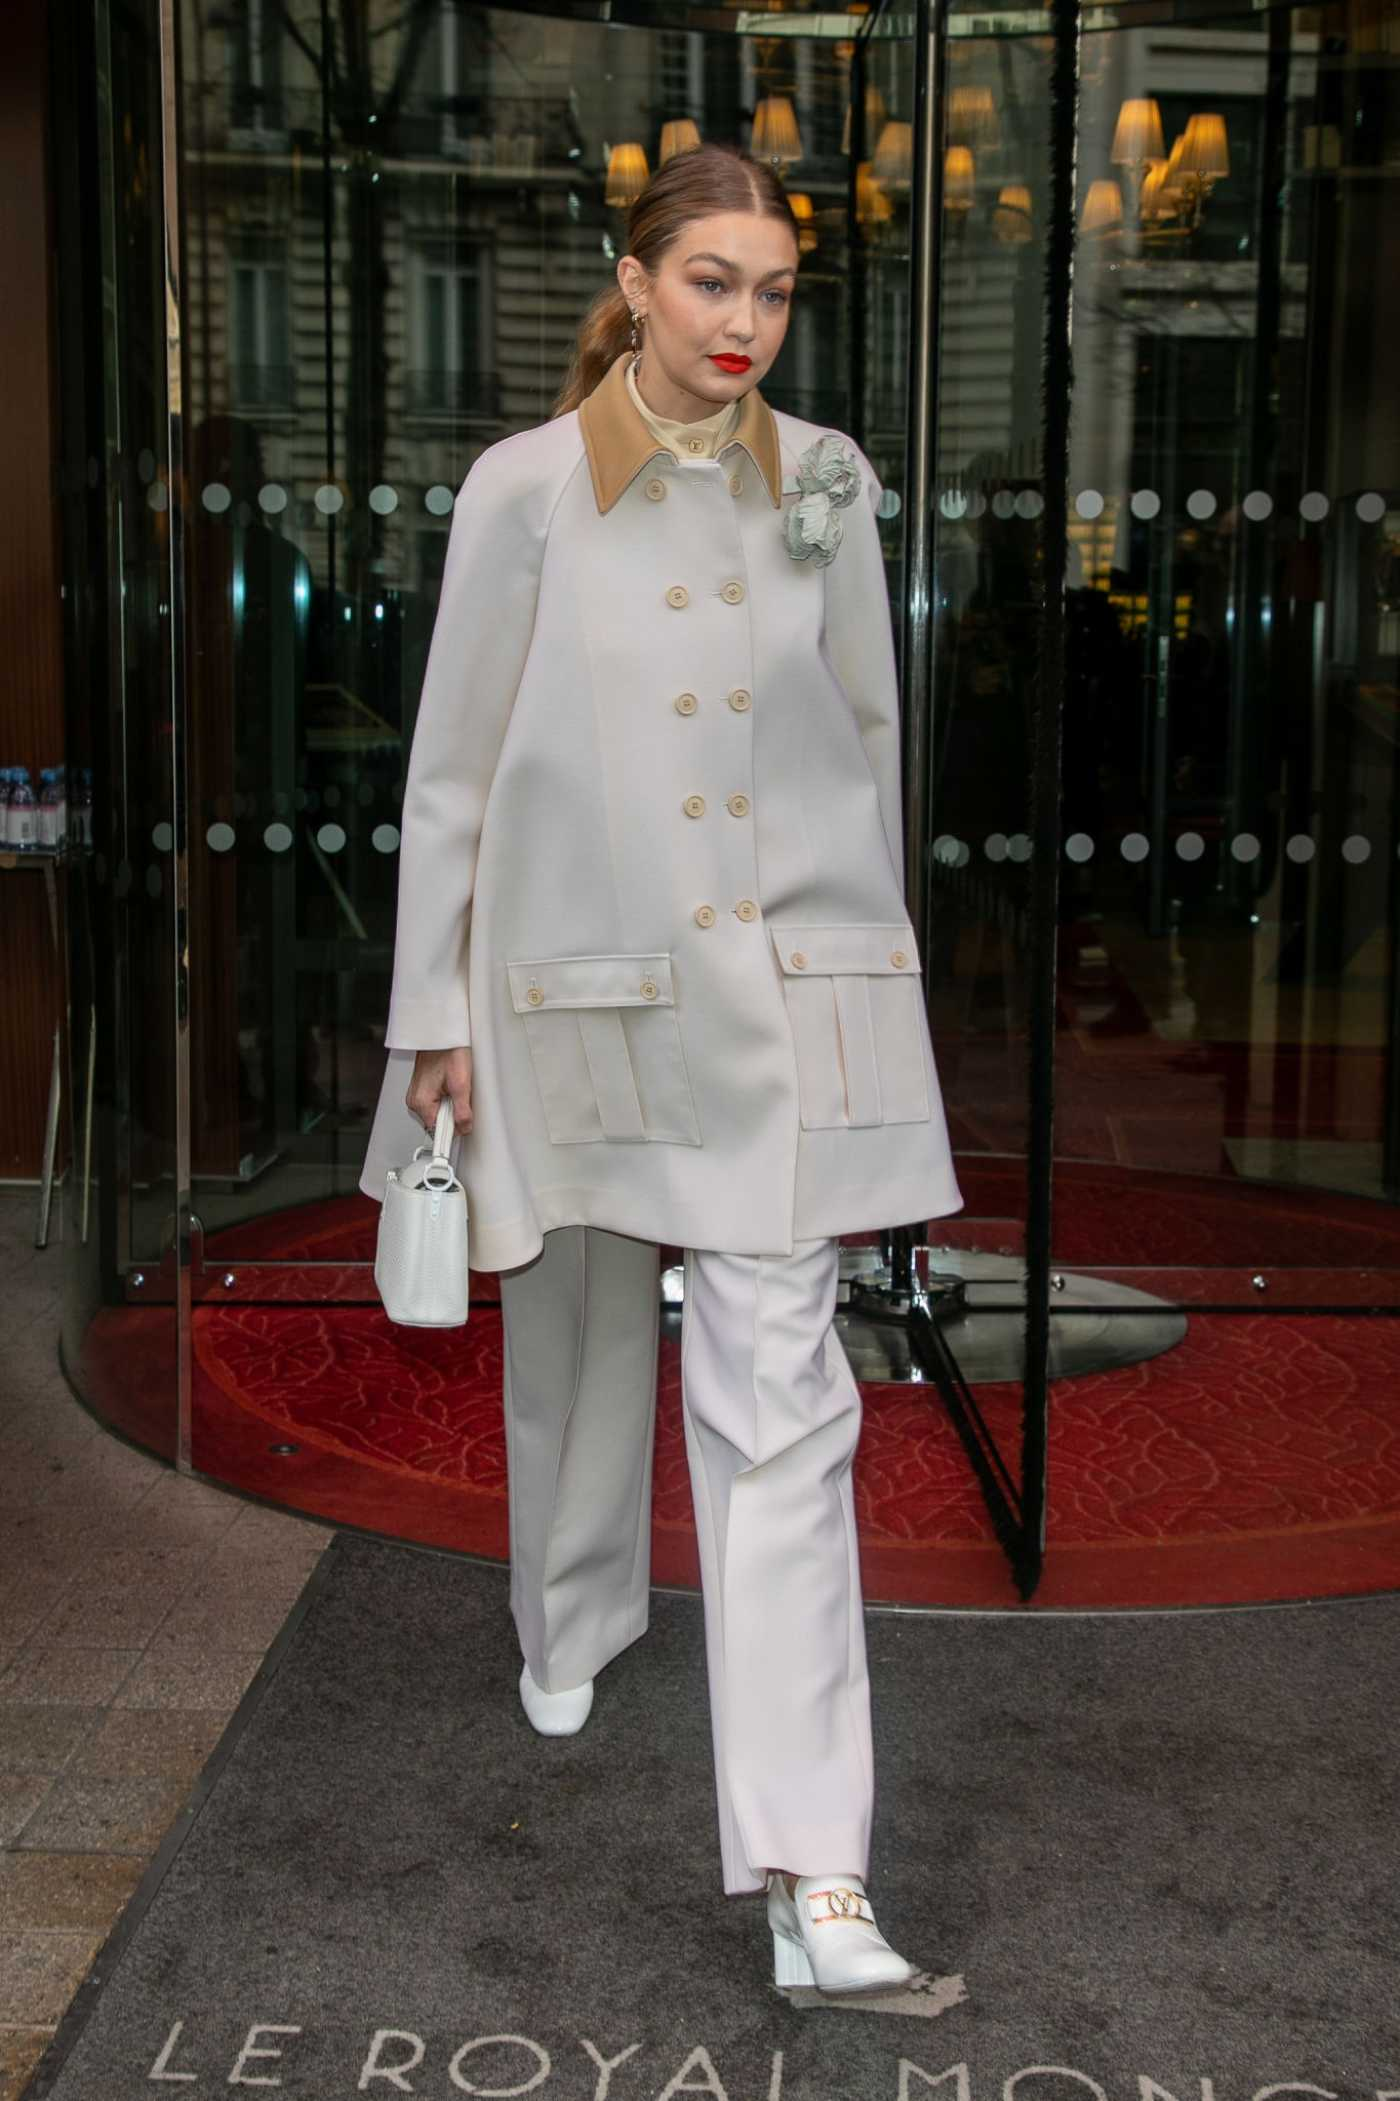 Gigi Hadid in a Beige Coat Leaves the Royal Monceau Hotel in Paris 02/27/2020